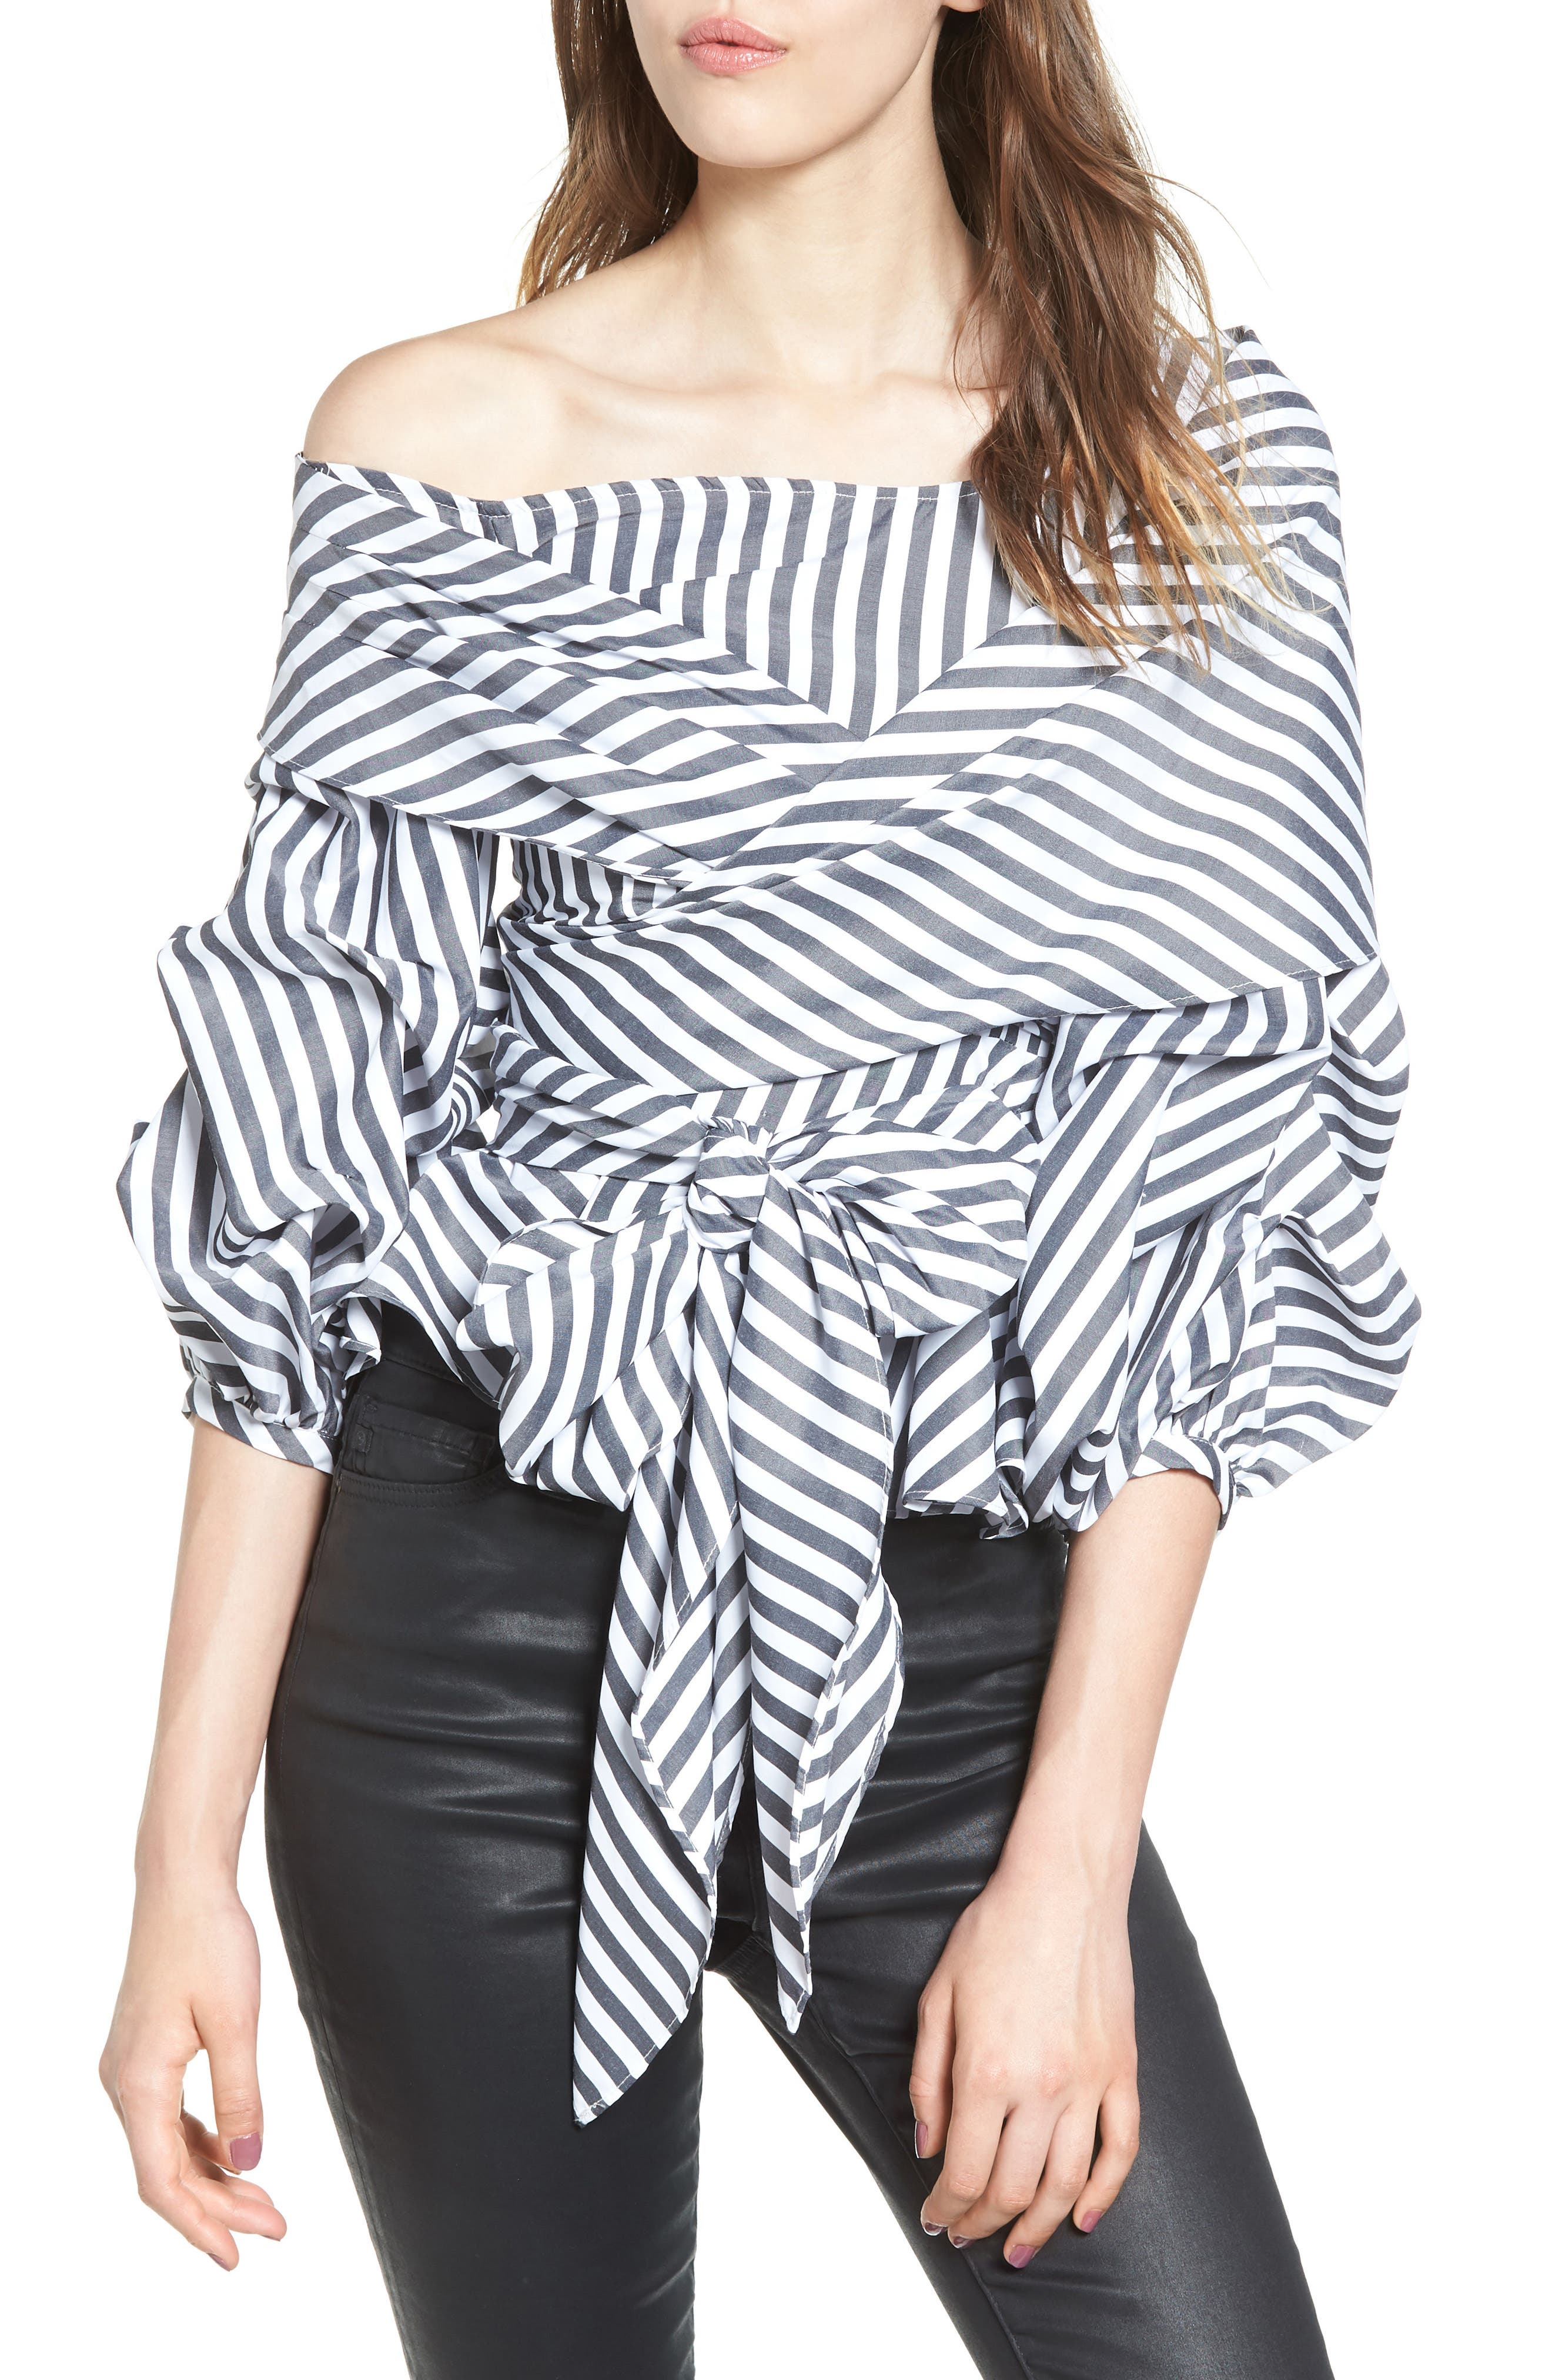 The Lovers Lane Top,                         Main,                         color, Striped Charcoal